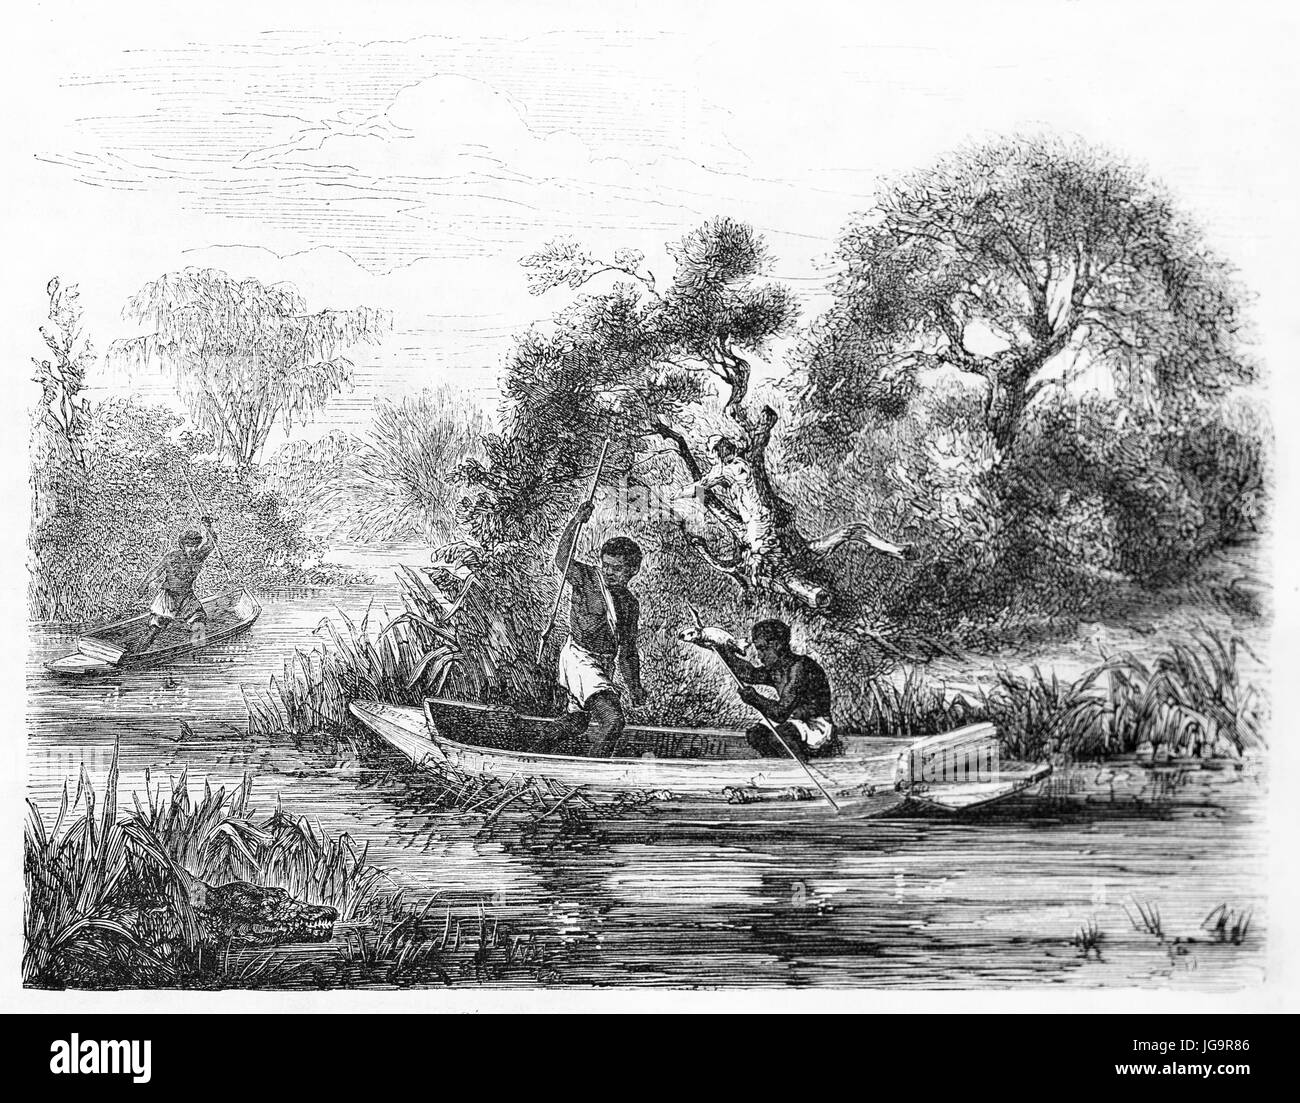 Old illustration of fishermen on Falémé river (on the border between Senegal and Mali). Created by Duvaux after Stock Photo